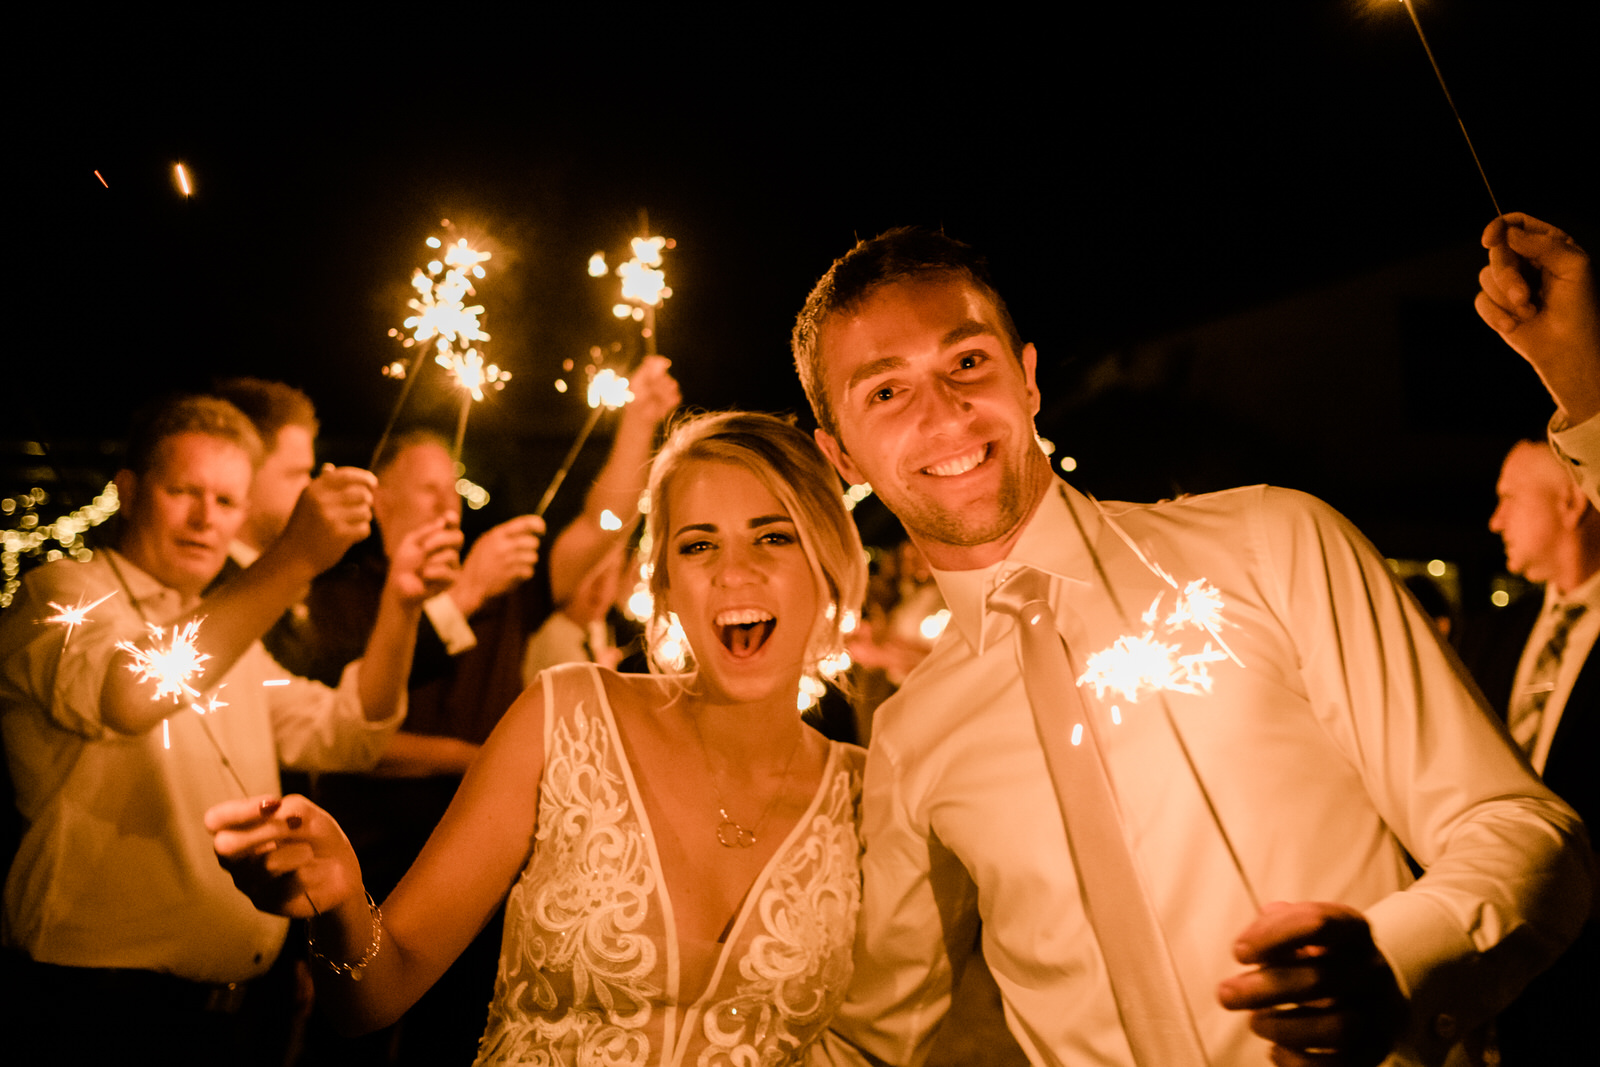 wedding-couple-exit-reception-with-fireworks-sparklers